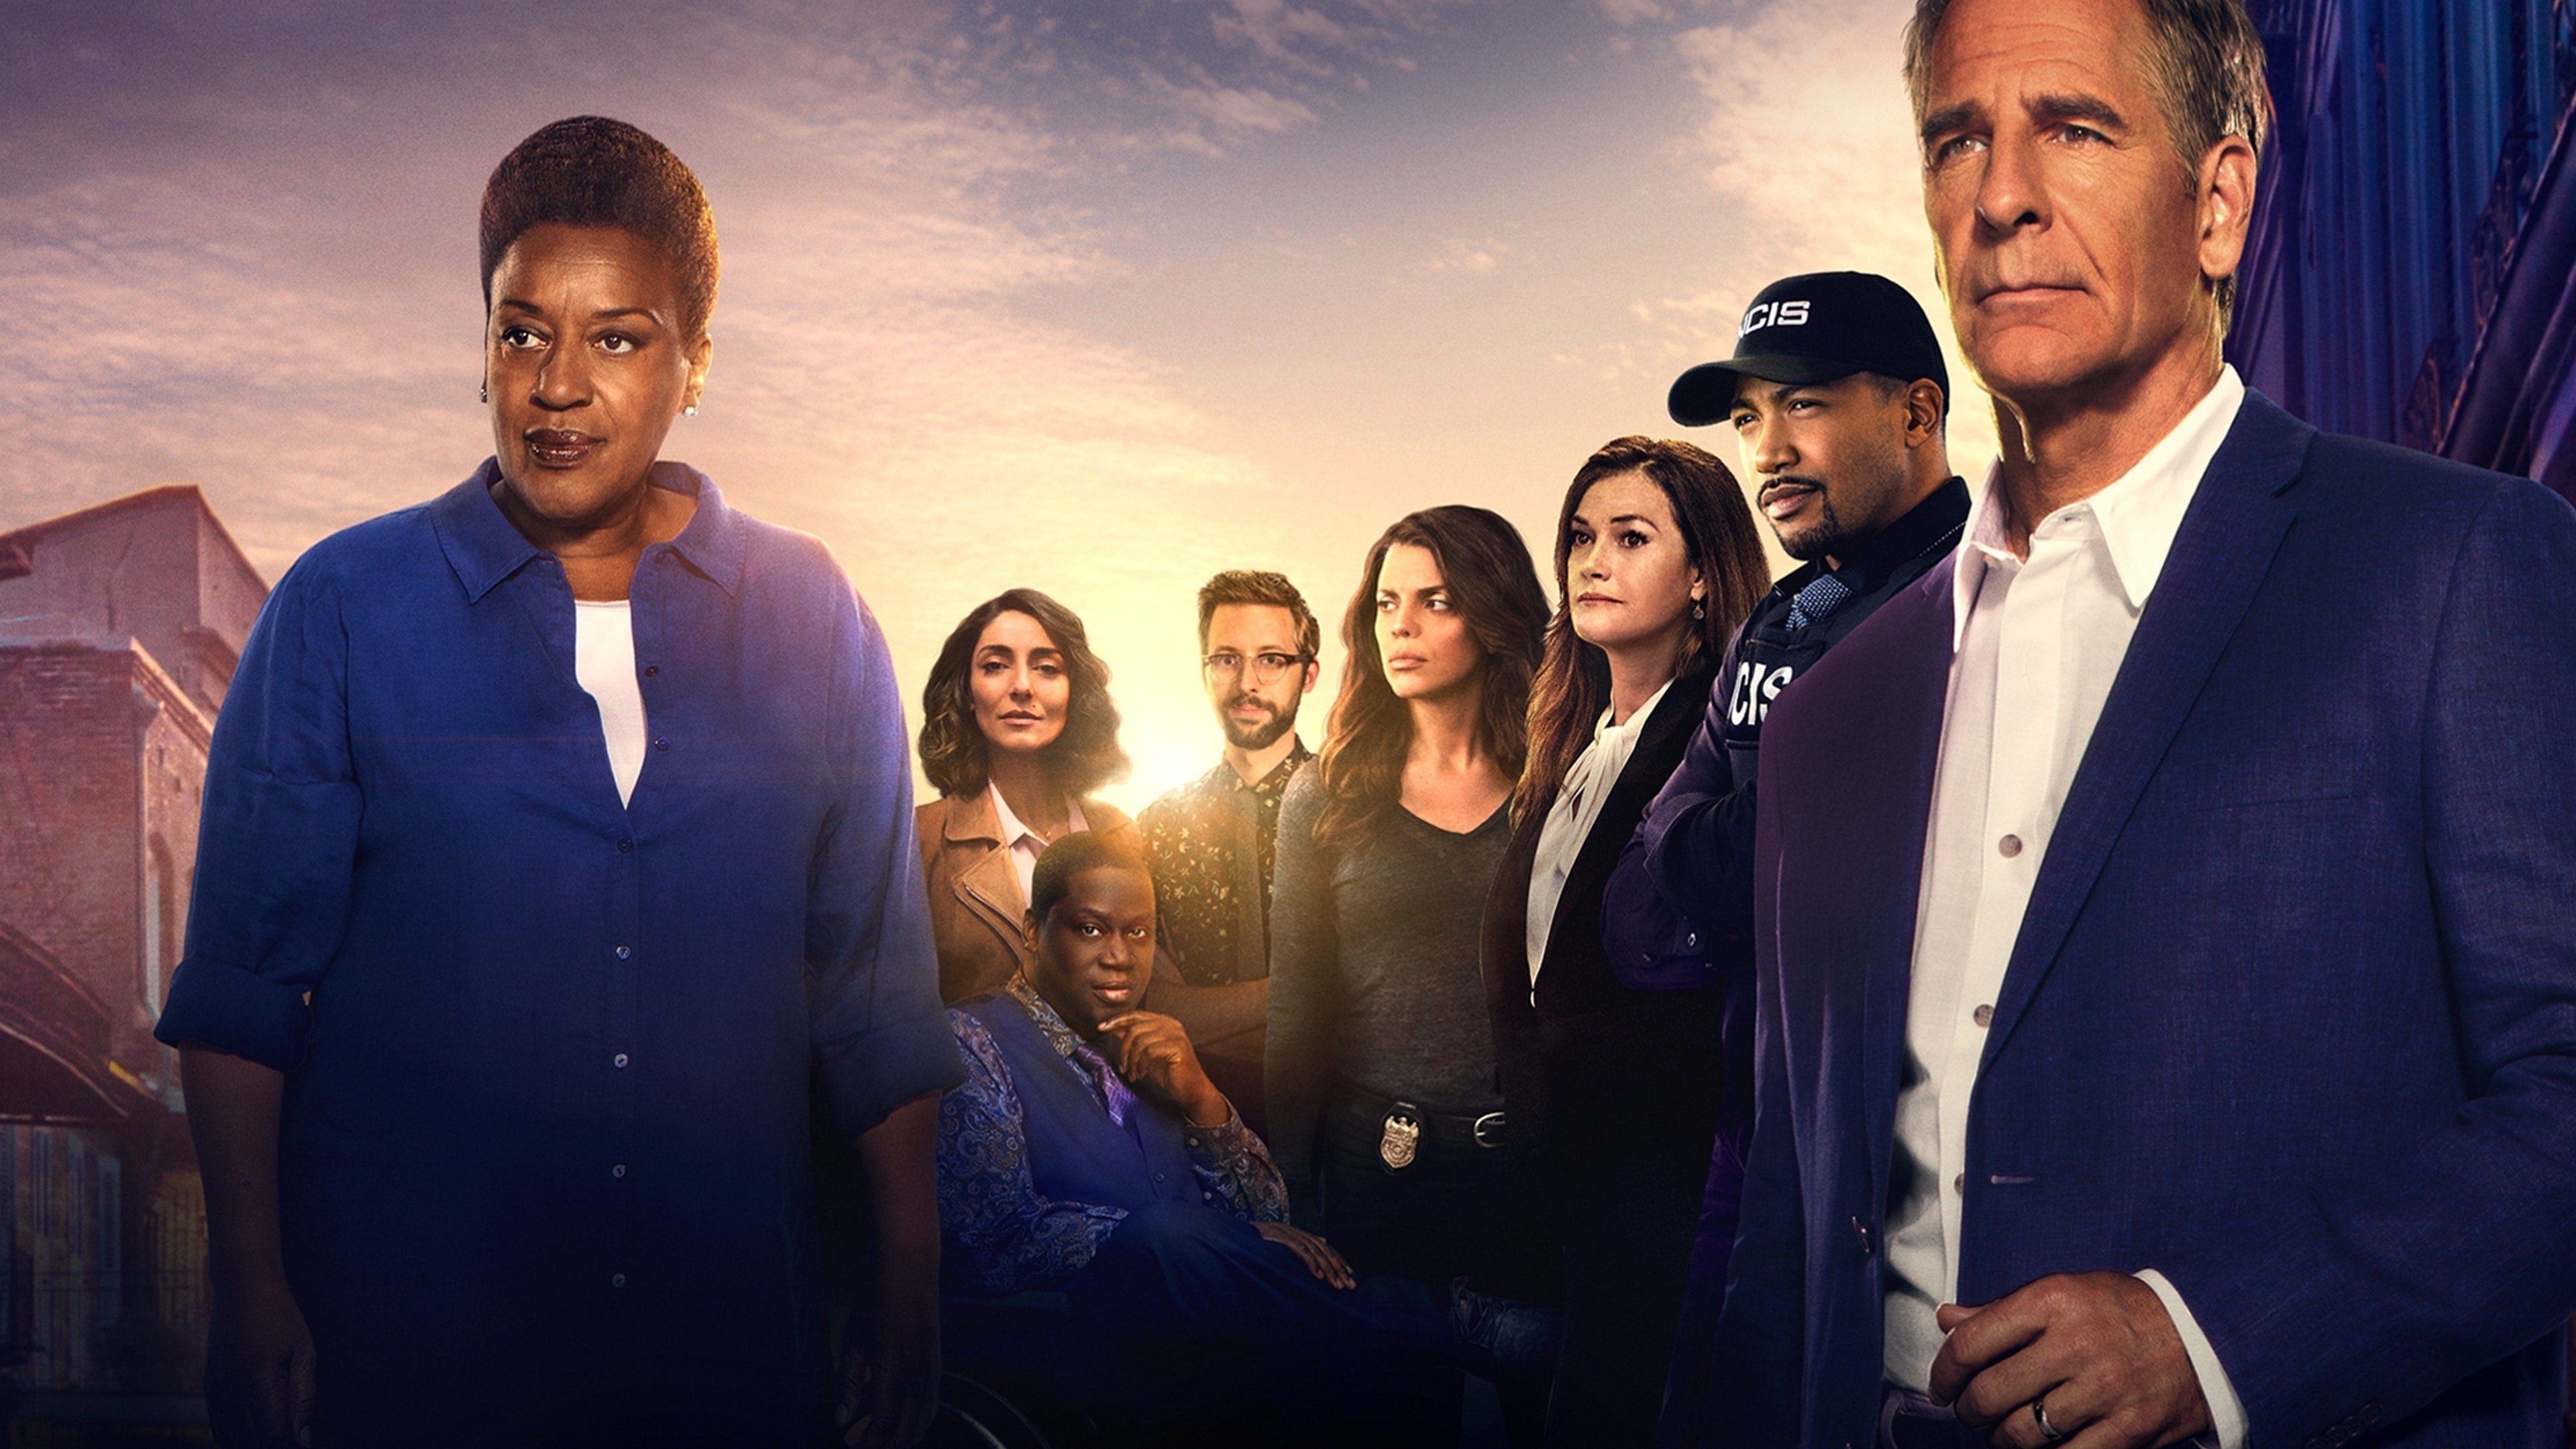 NCIS: New Orleans Soundtrack